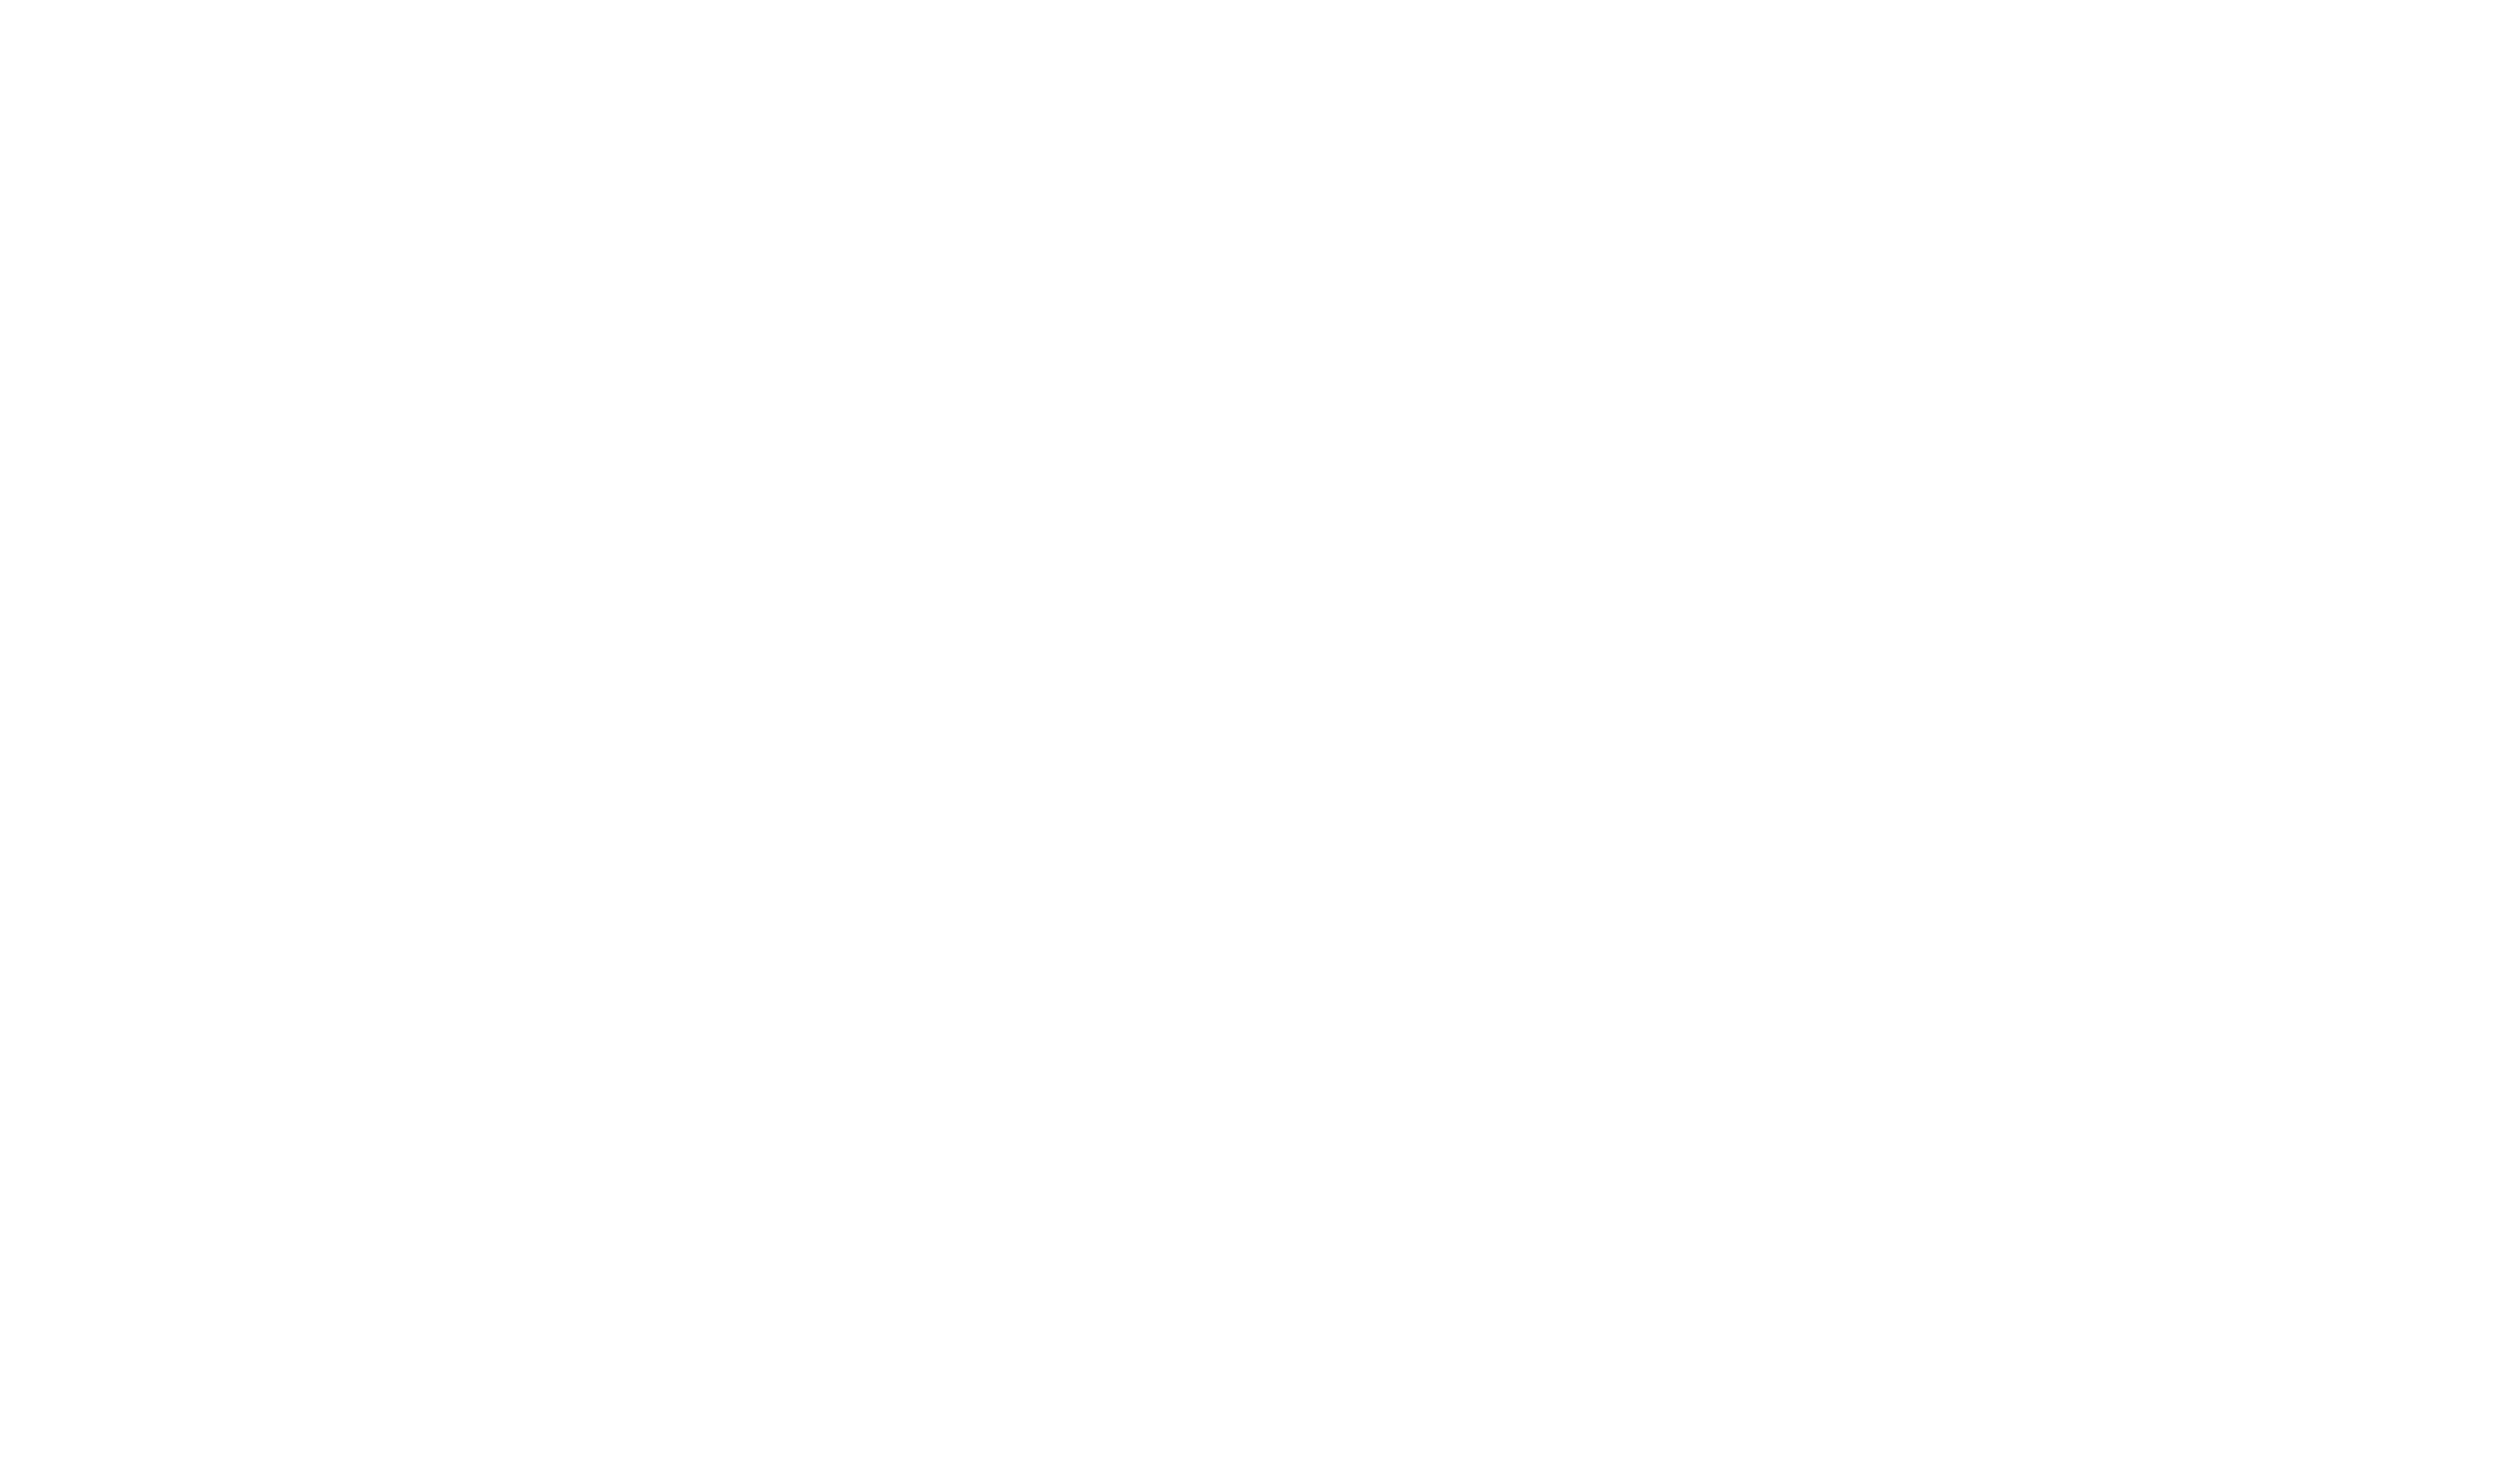 Housing Authority of Champaign County